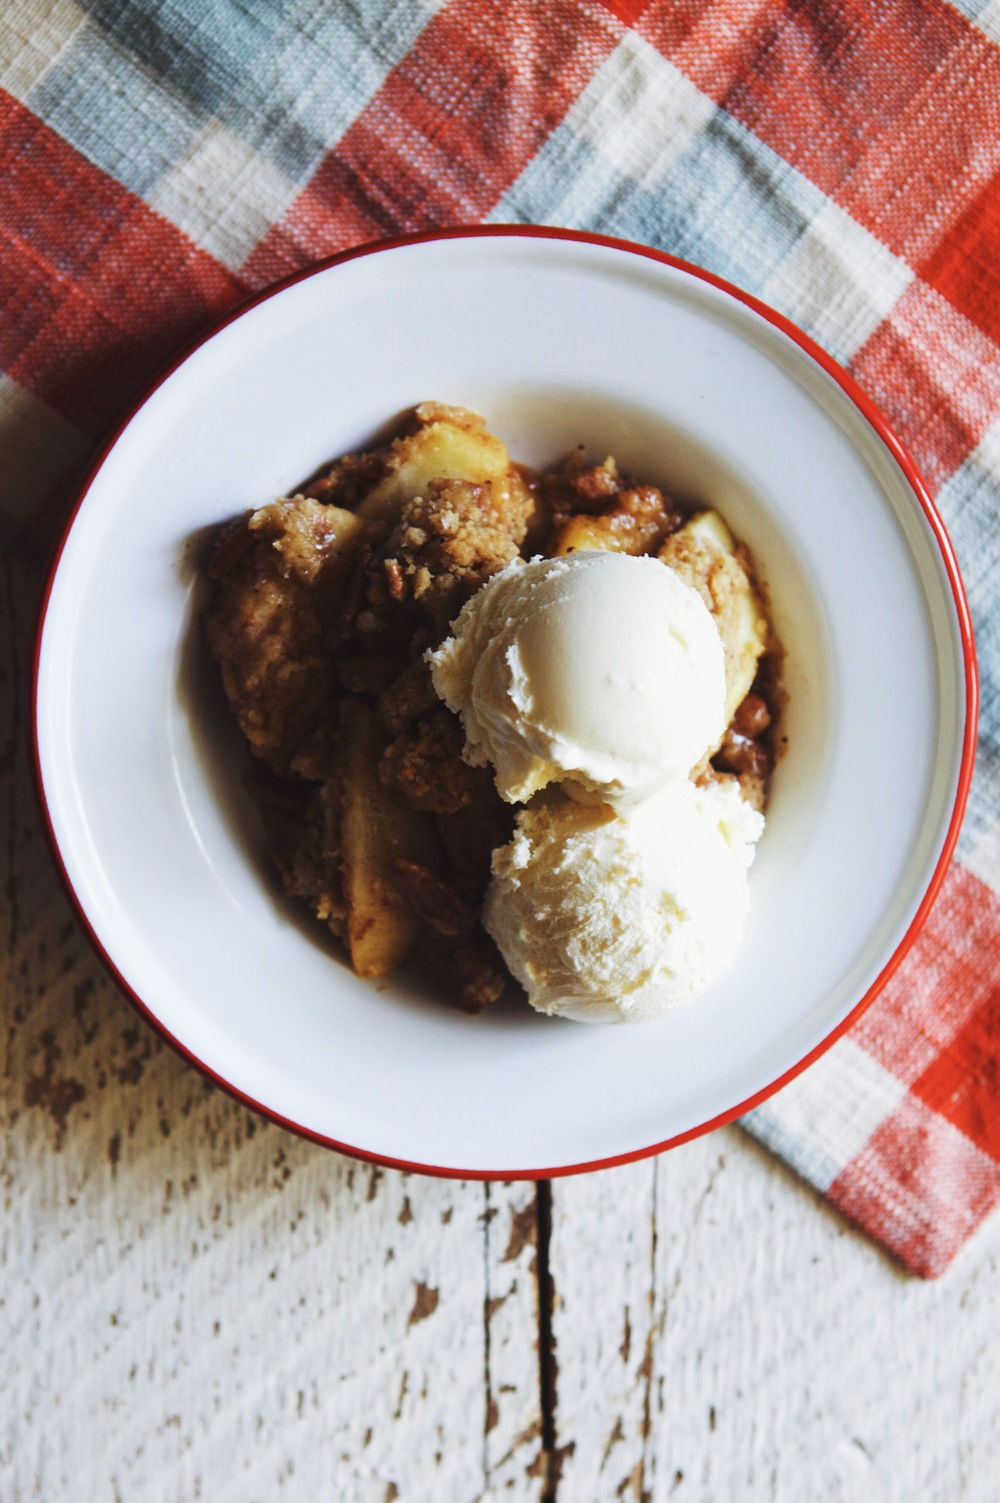 vanilla apple crumble from Whip it Up! by Billy Green